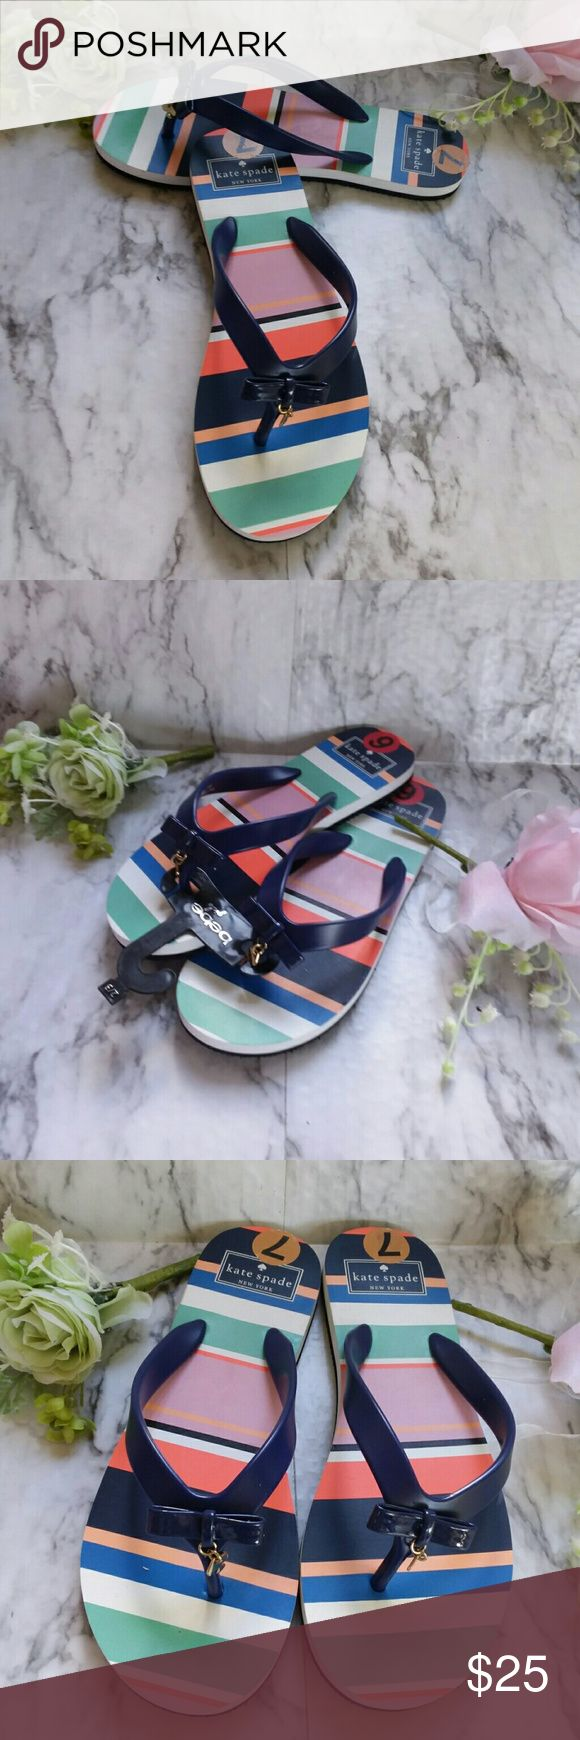 Kate Spade Tropical Stripe Flip Flop Shoes Size 7 This is a new pair of Kate Spade tropical stripe flip flops. They are size 7. They are new without tags. kate spade Shoes Flats & Loafers